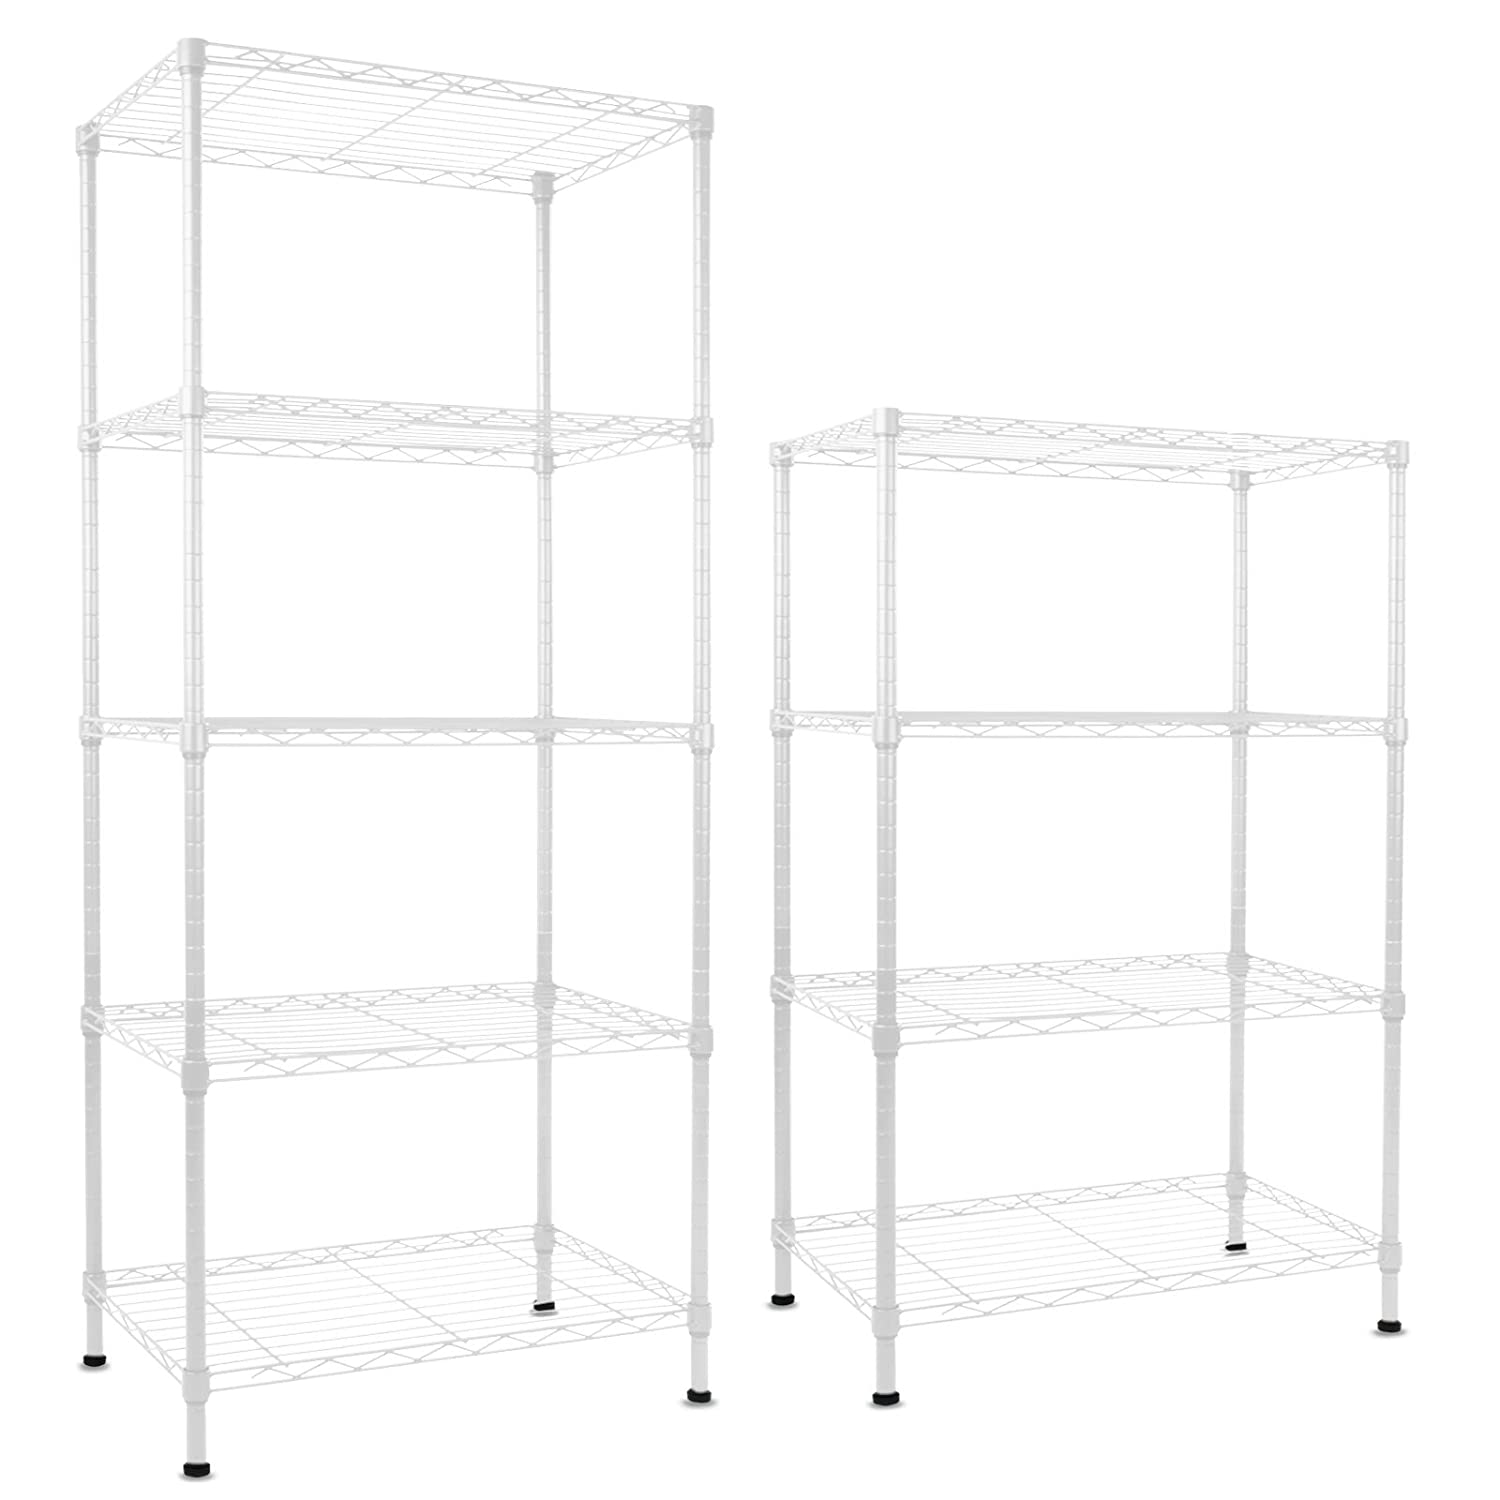 casa pura Steel Shelving Rocky, White - 5 Tier, 90x45x200cm | 4 Sizes - Multipurpose Storage System